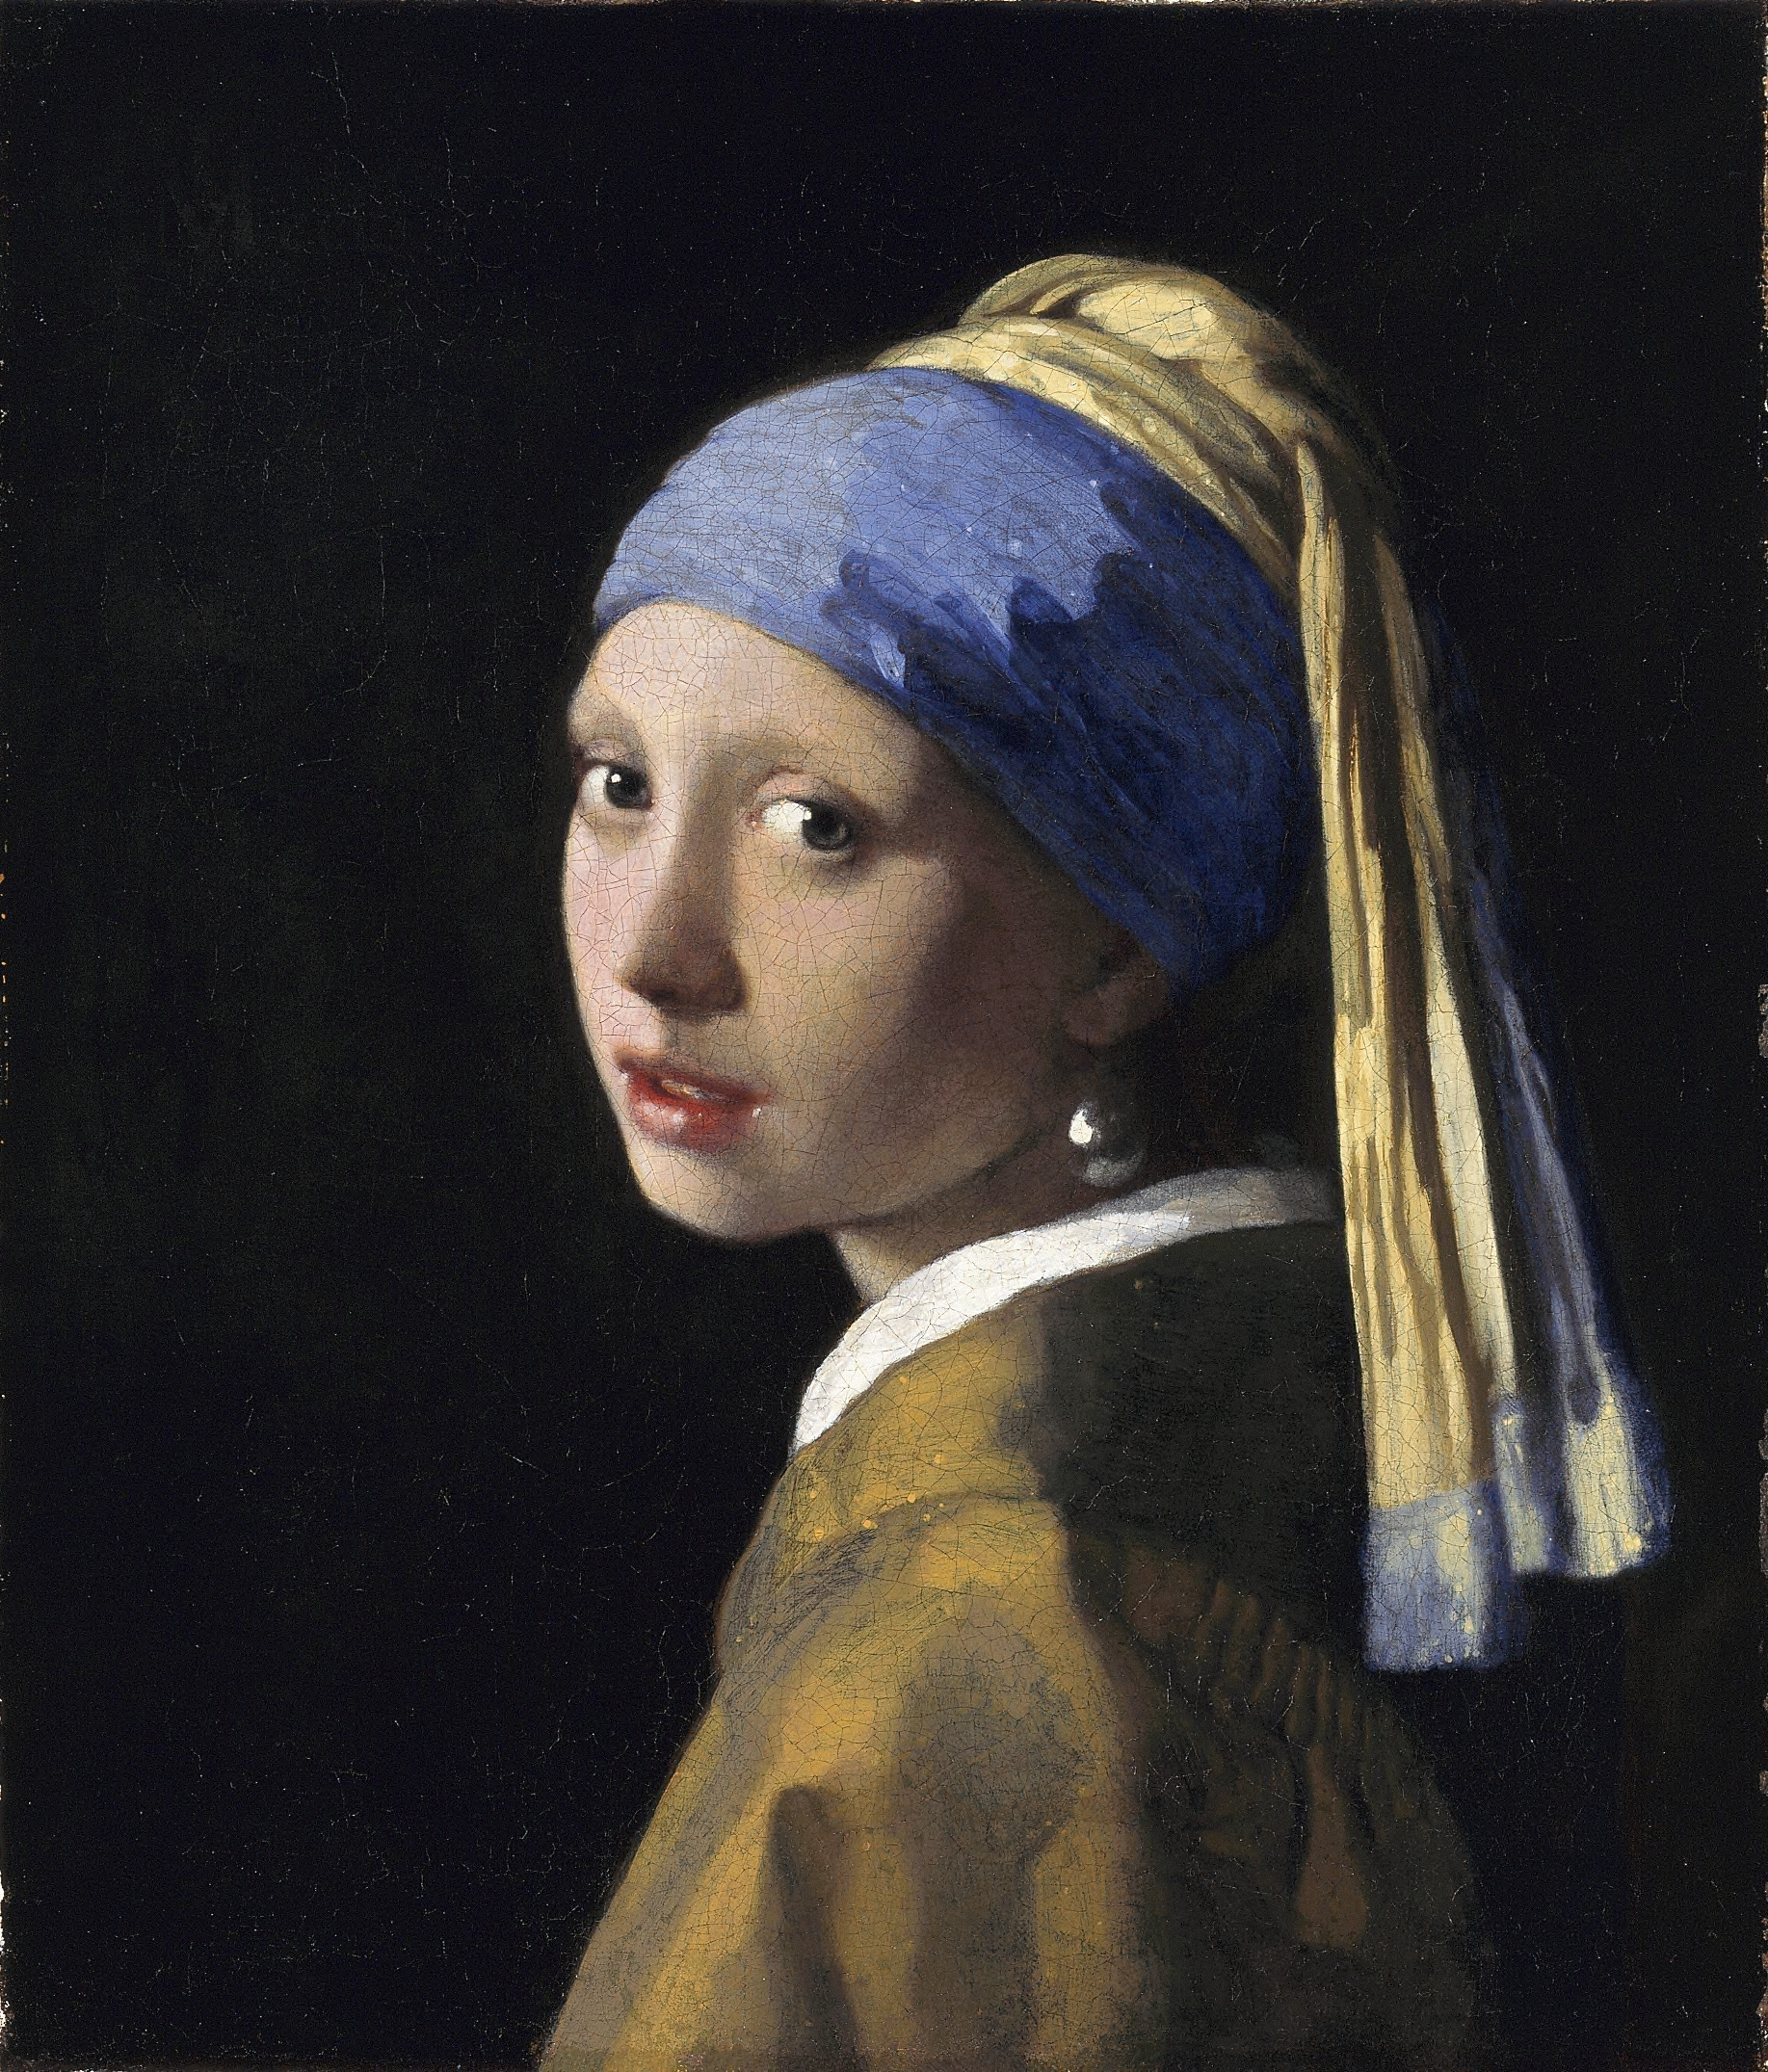 Girl with a pearl earring, painting by Johannes Vermeer